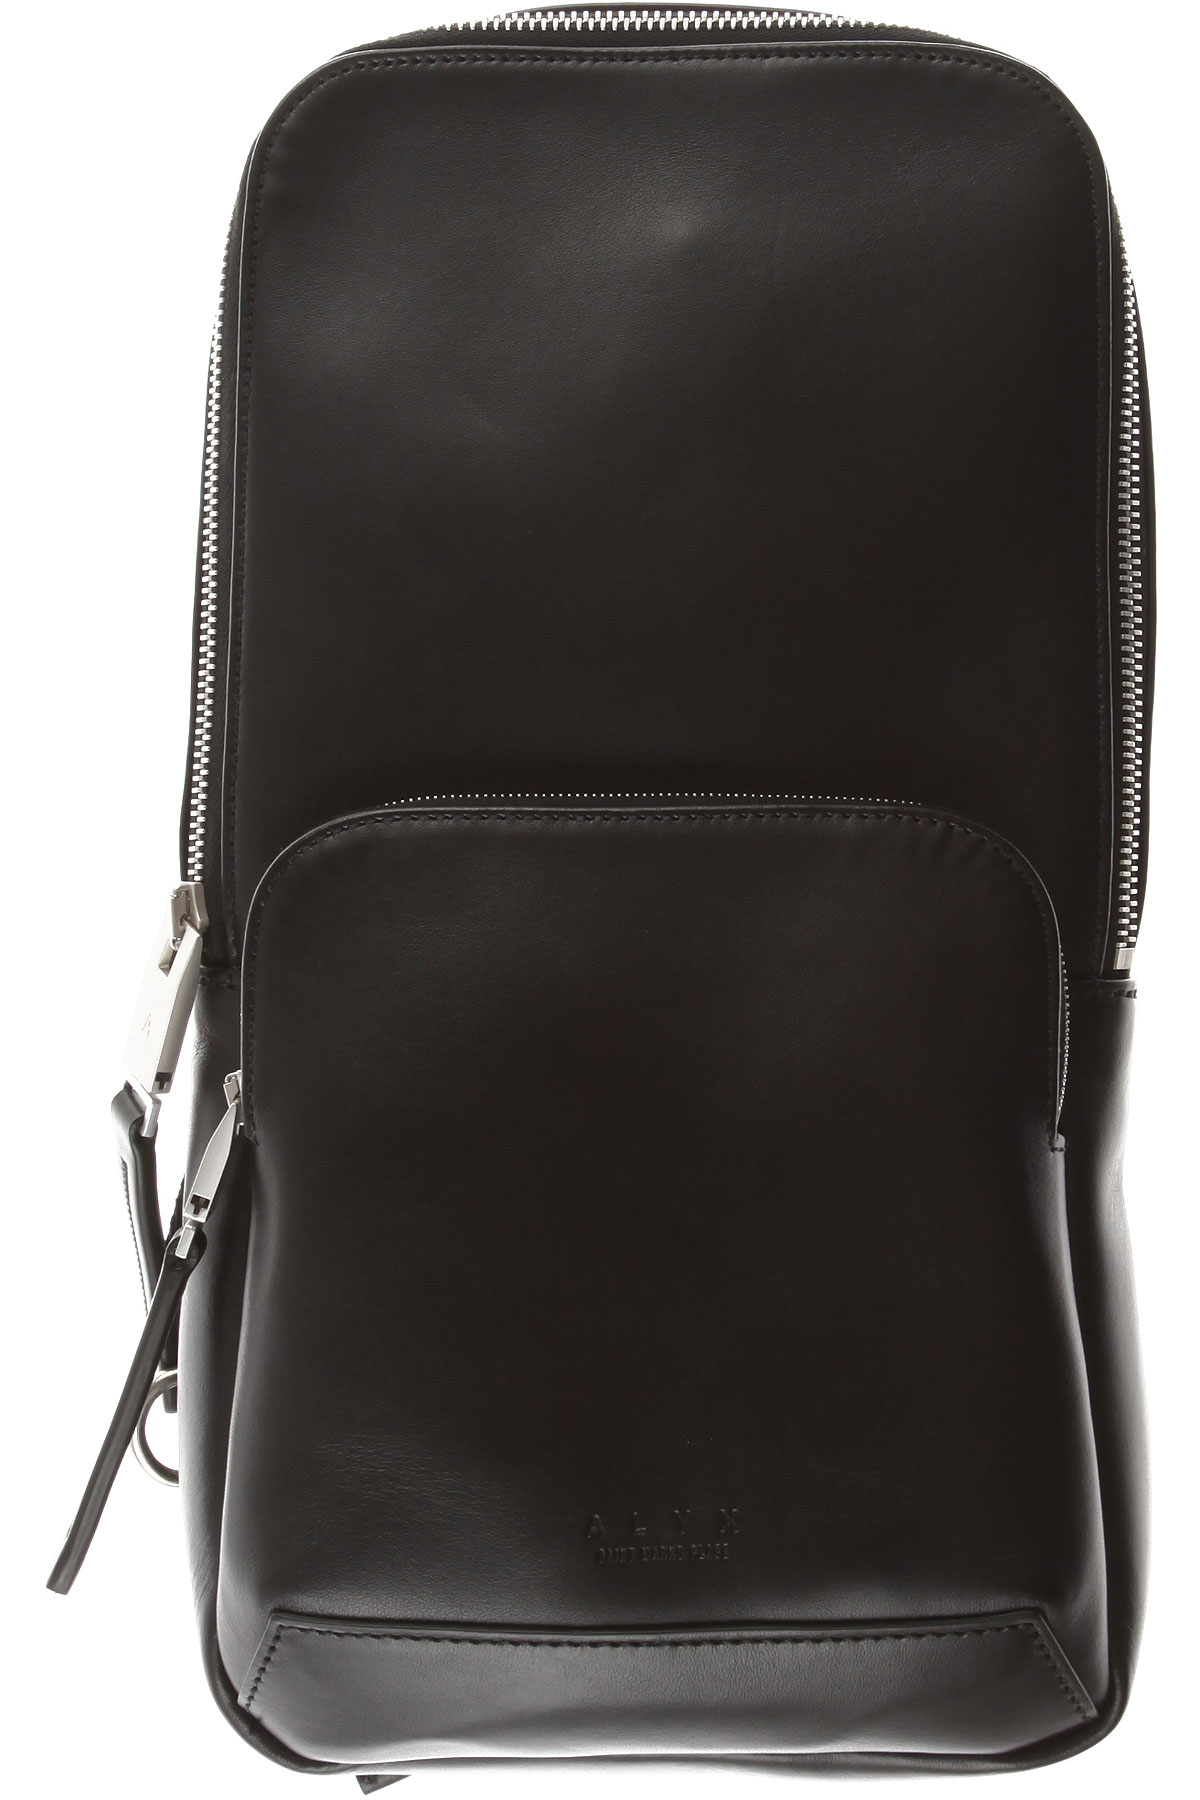 Image of ALYX Backpack for Men, Black, Leather, 2017, one size